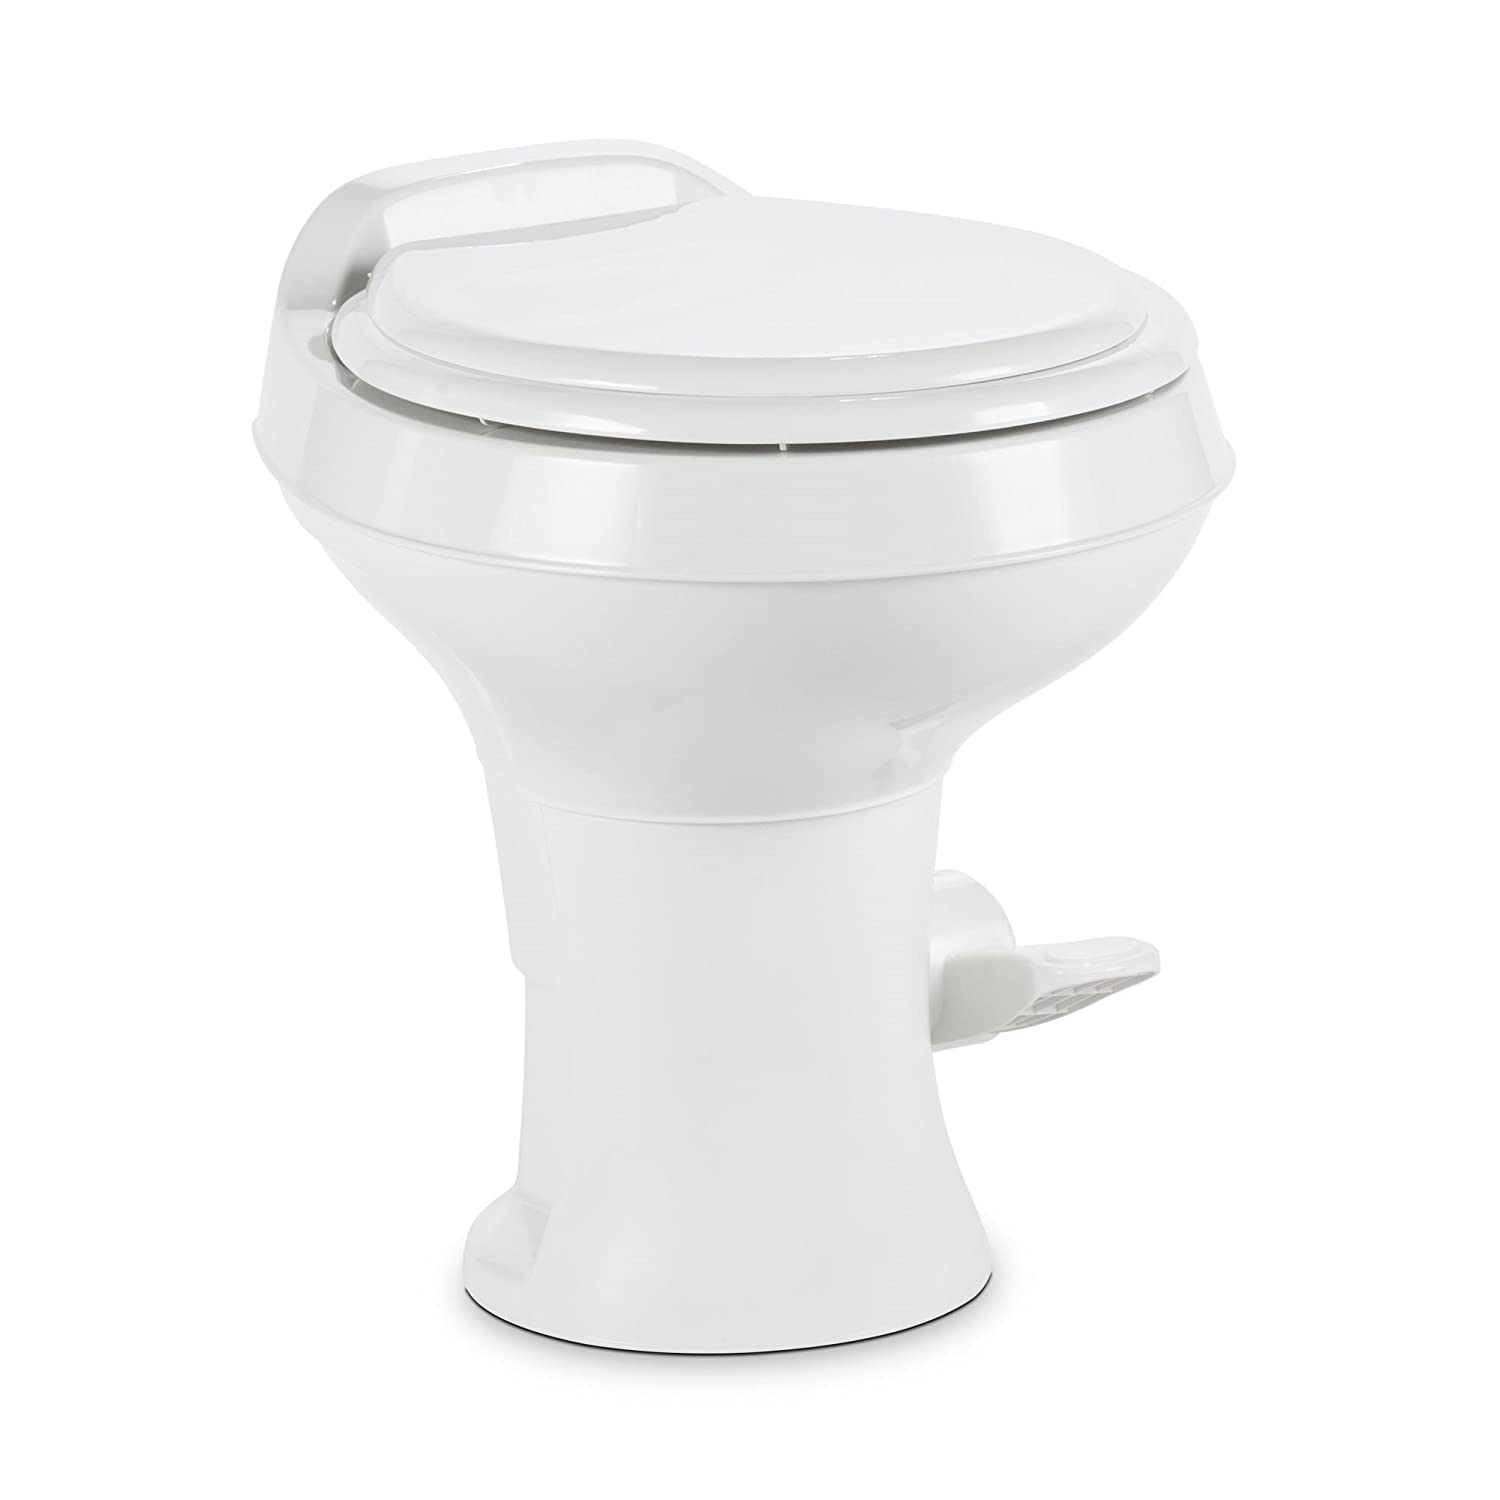 Best Toilets Under $200, $300 to $400 Reviews in 2020 1